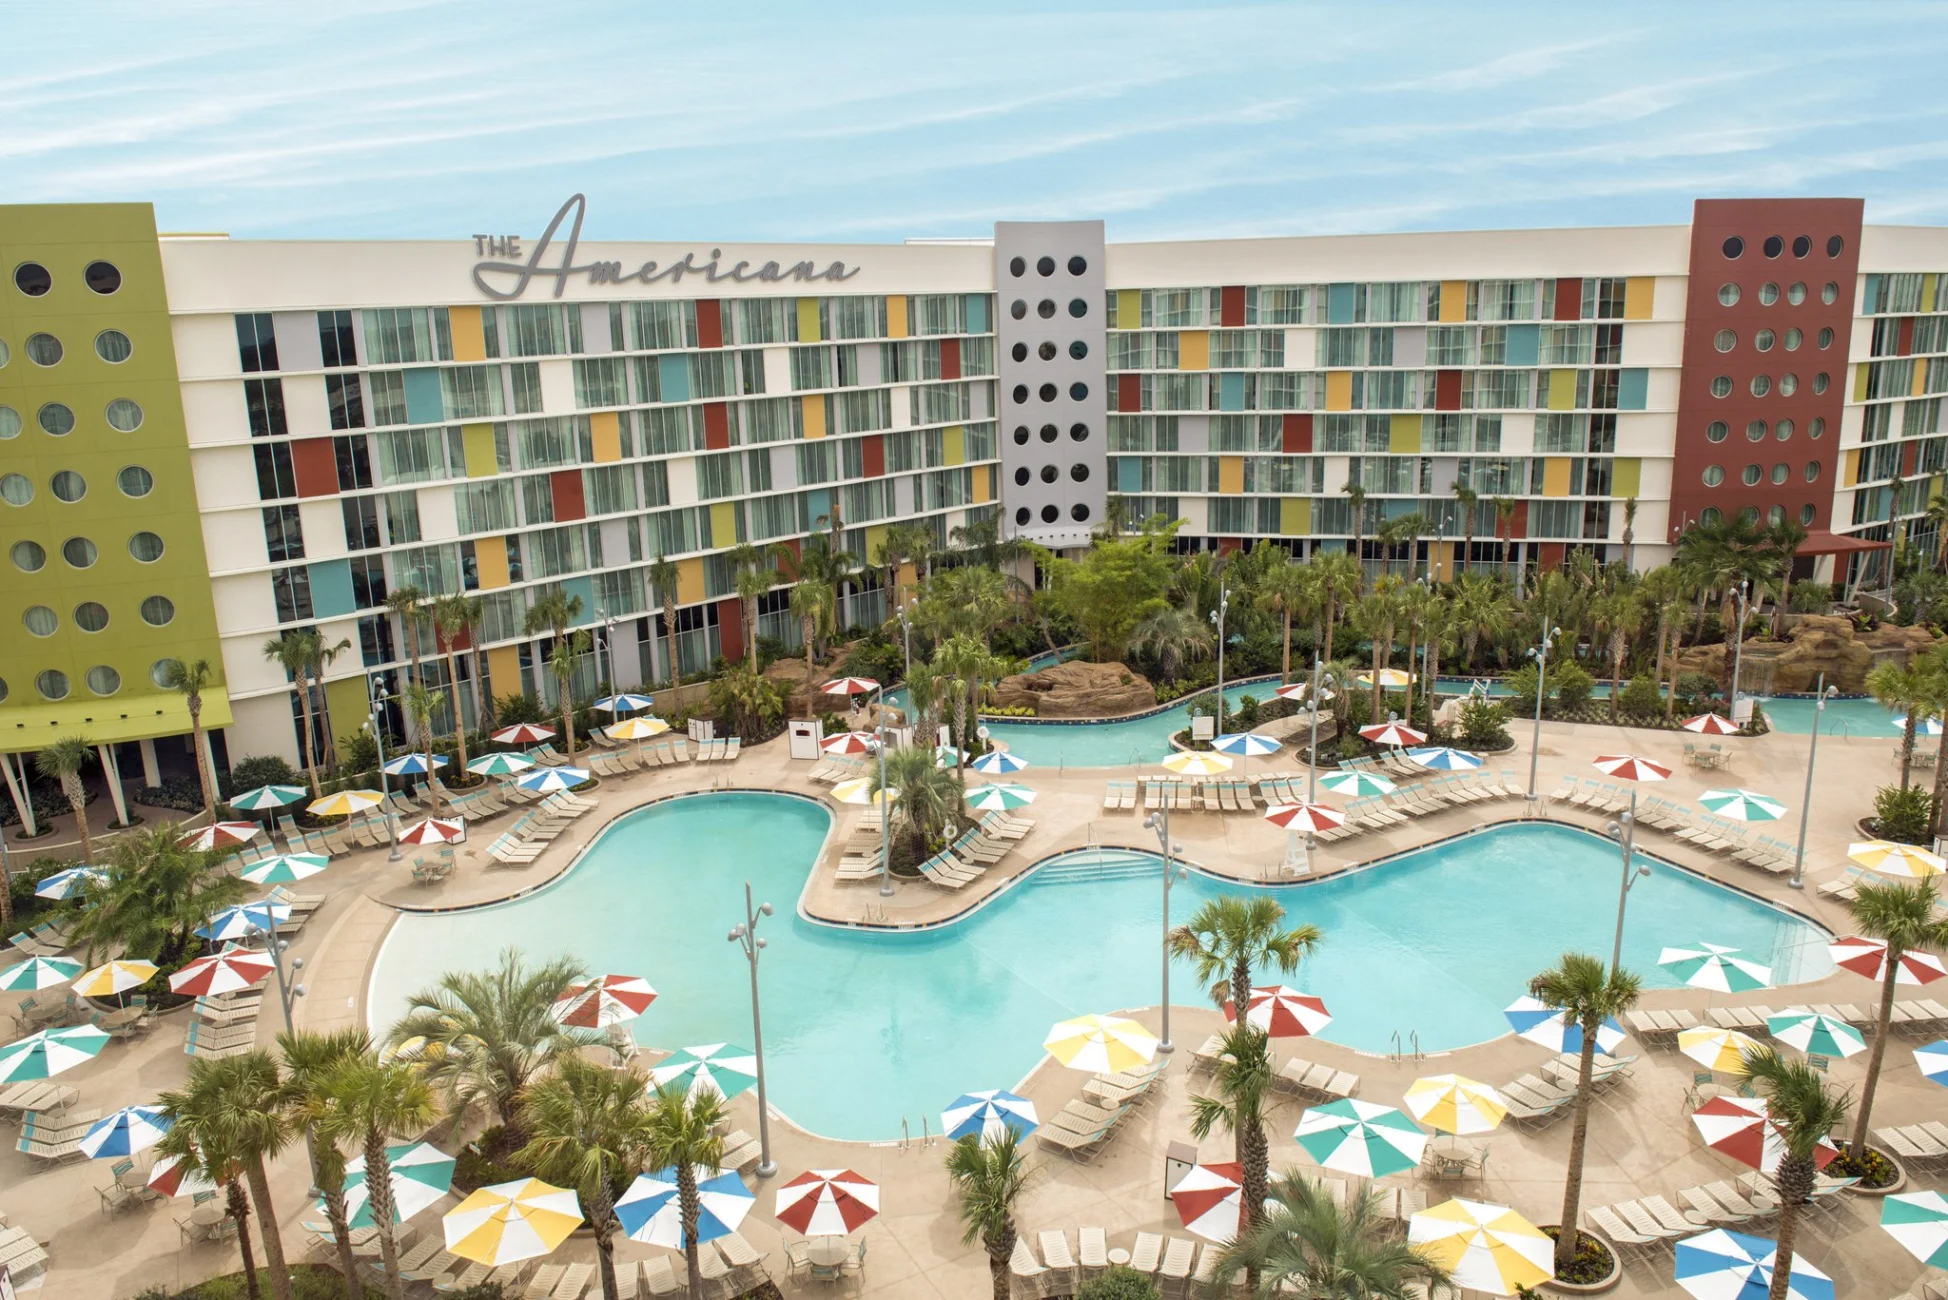 Best Hotels to Stay in South-West Orlando - Universal's Cabana Bay Beach Resort